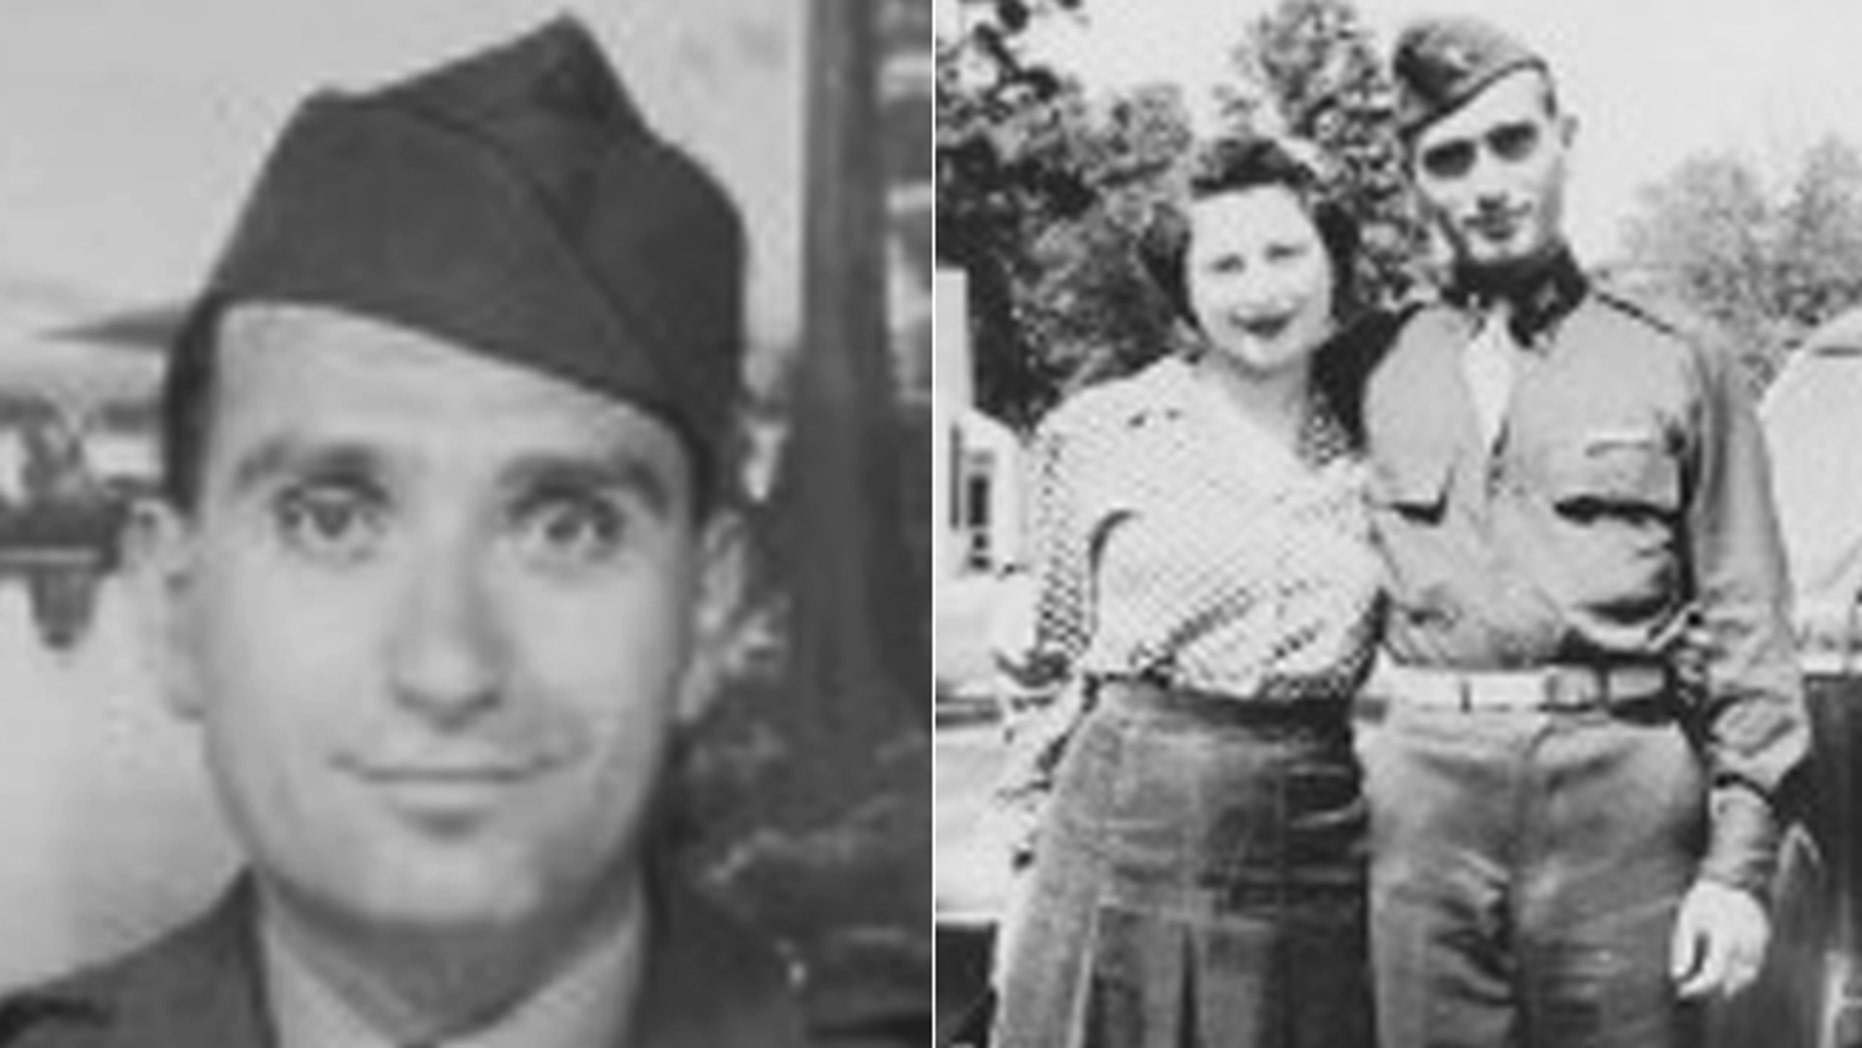 These undated images provided by Hyla Merin show 2nd Lt. Hyman Markel and his bride, Celia Markel.